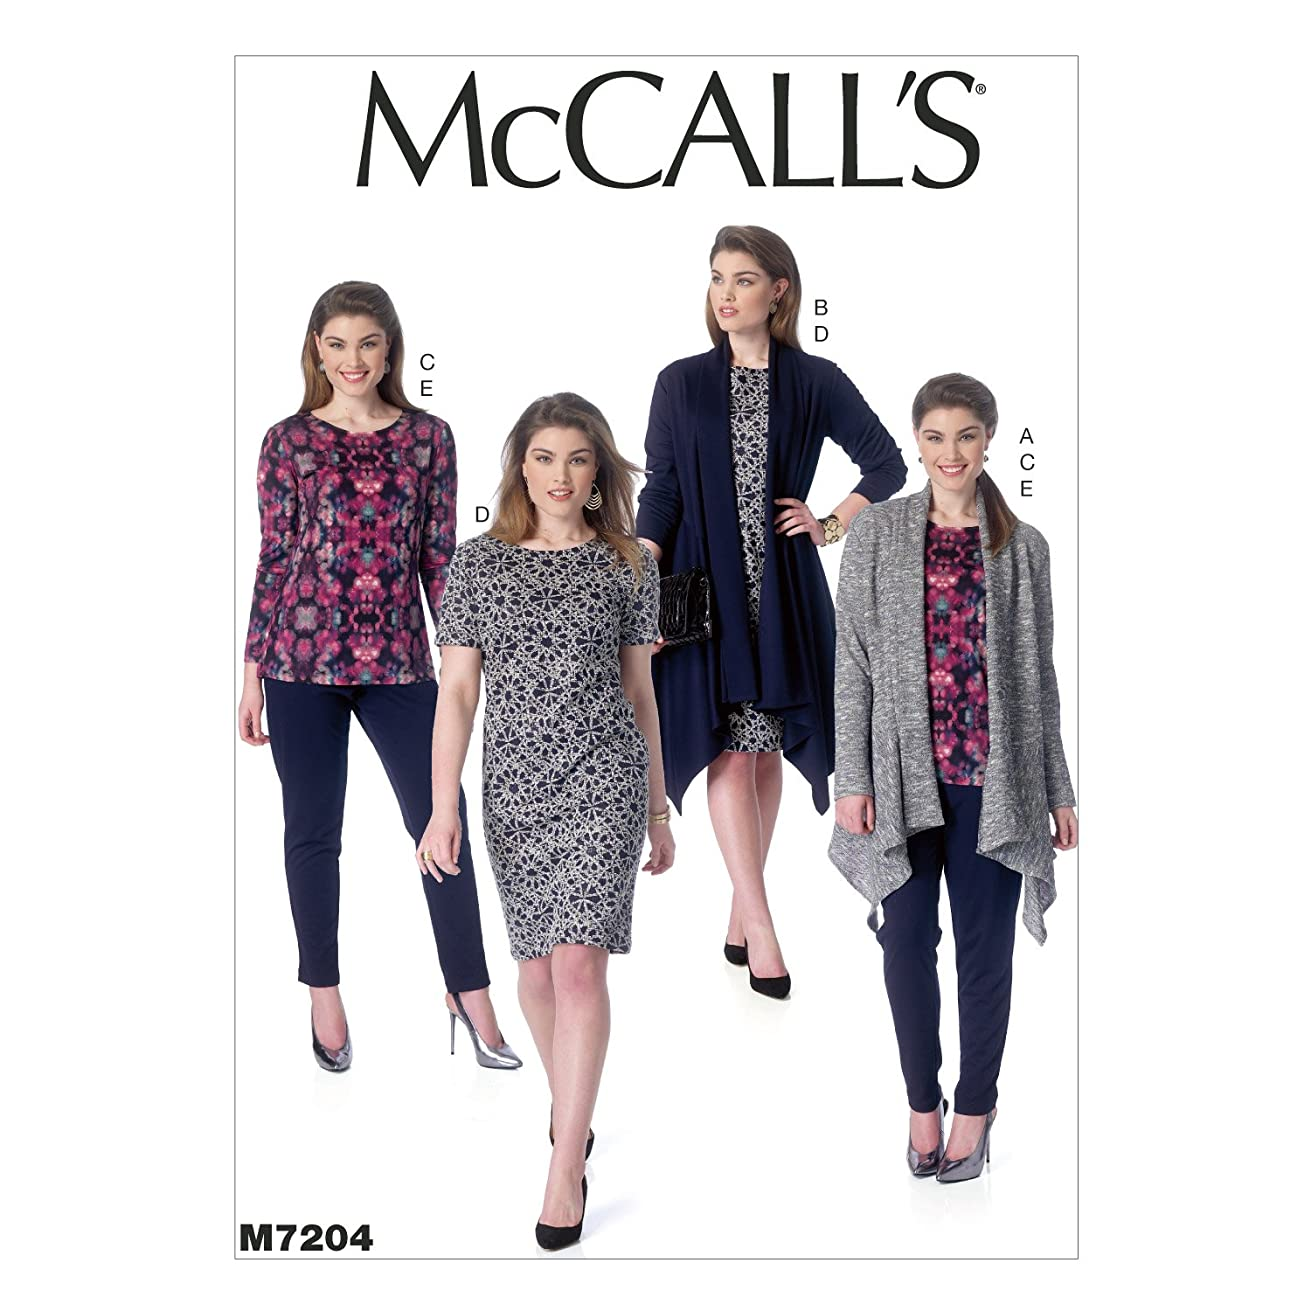 McCall's Patterns M7204 Women's Jacket, Top, Dress and Pants Sewing Template, RR (18W-20W-22W-24W)